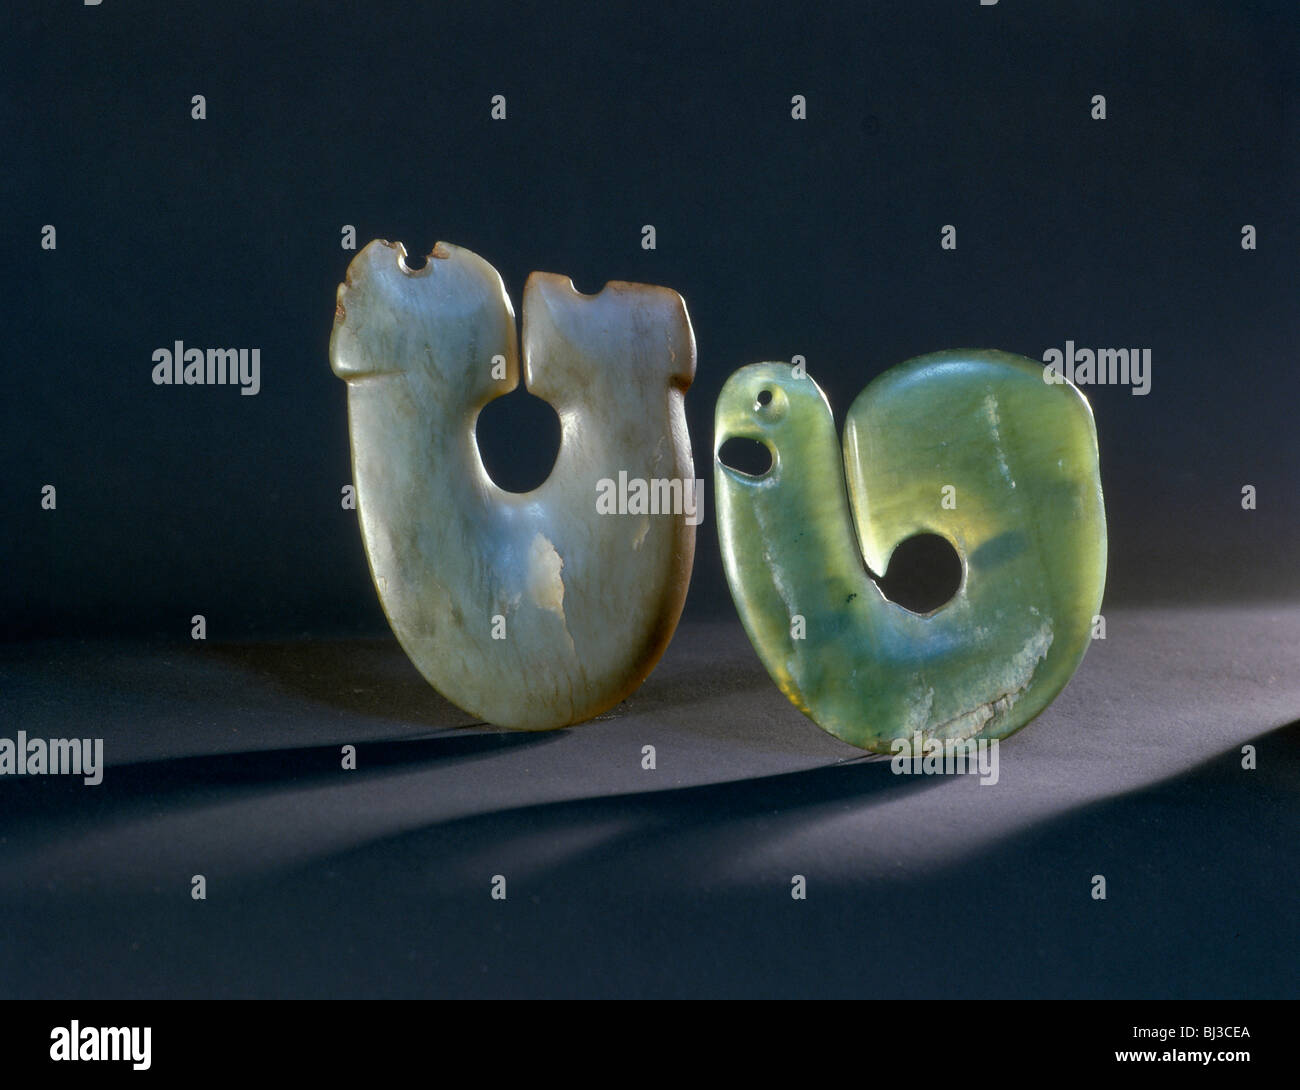 Green jade maori hei matau fish hook pendants new zealand artist green jade maori hei matau fish hook pendants new zealand artist werner forman mozeypictures Image collections